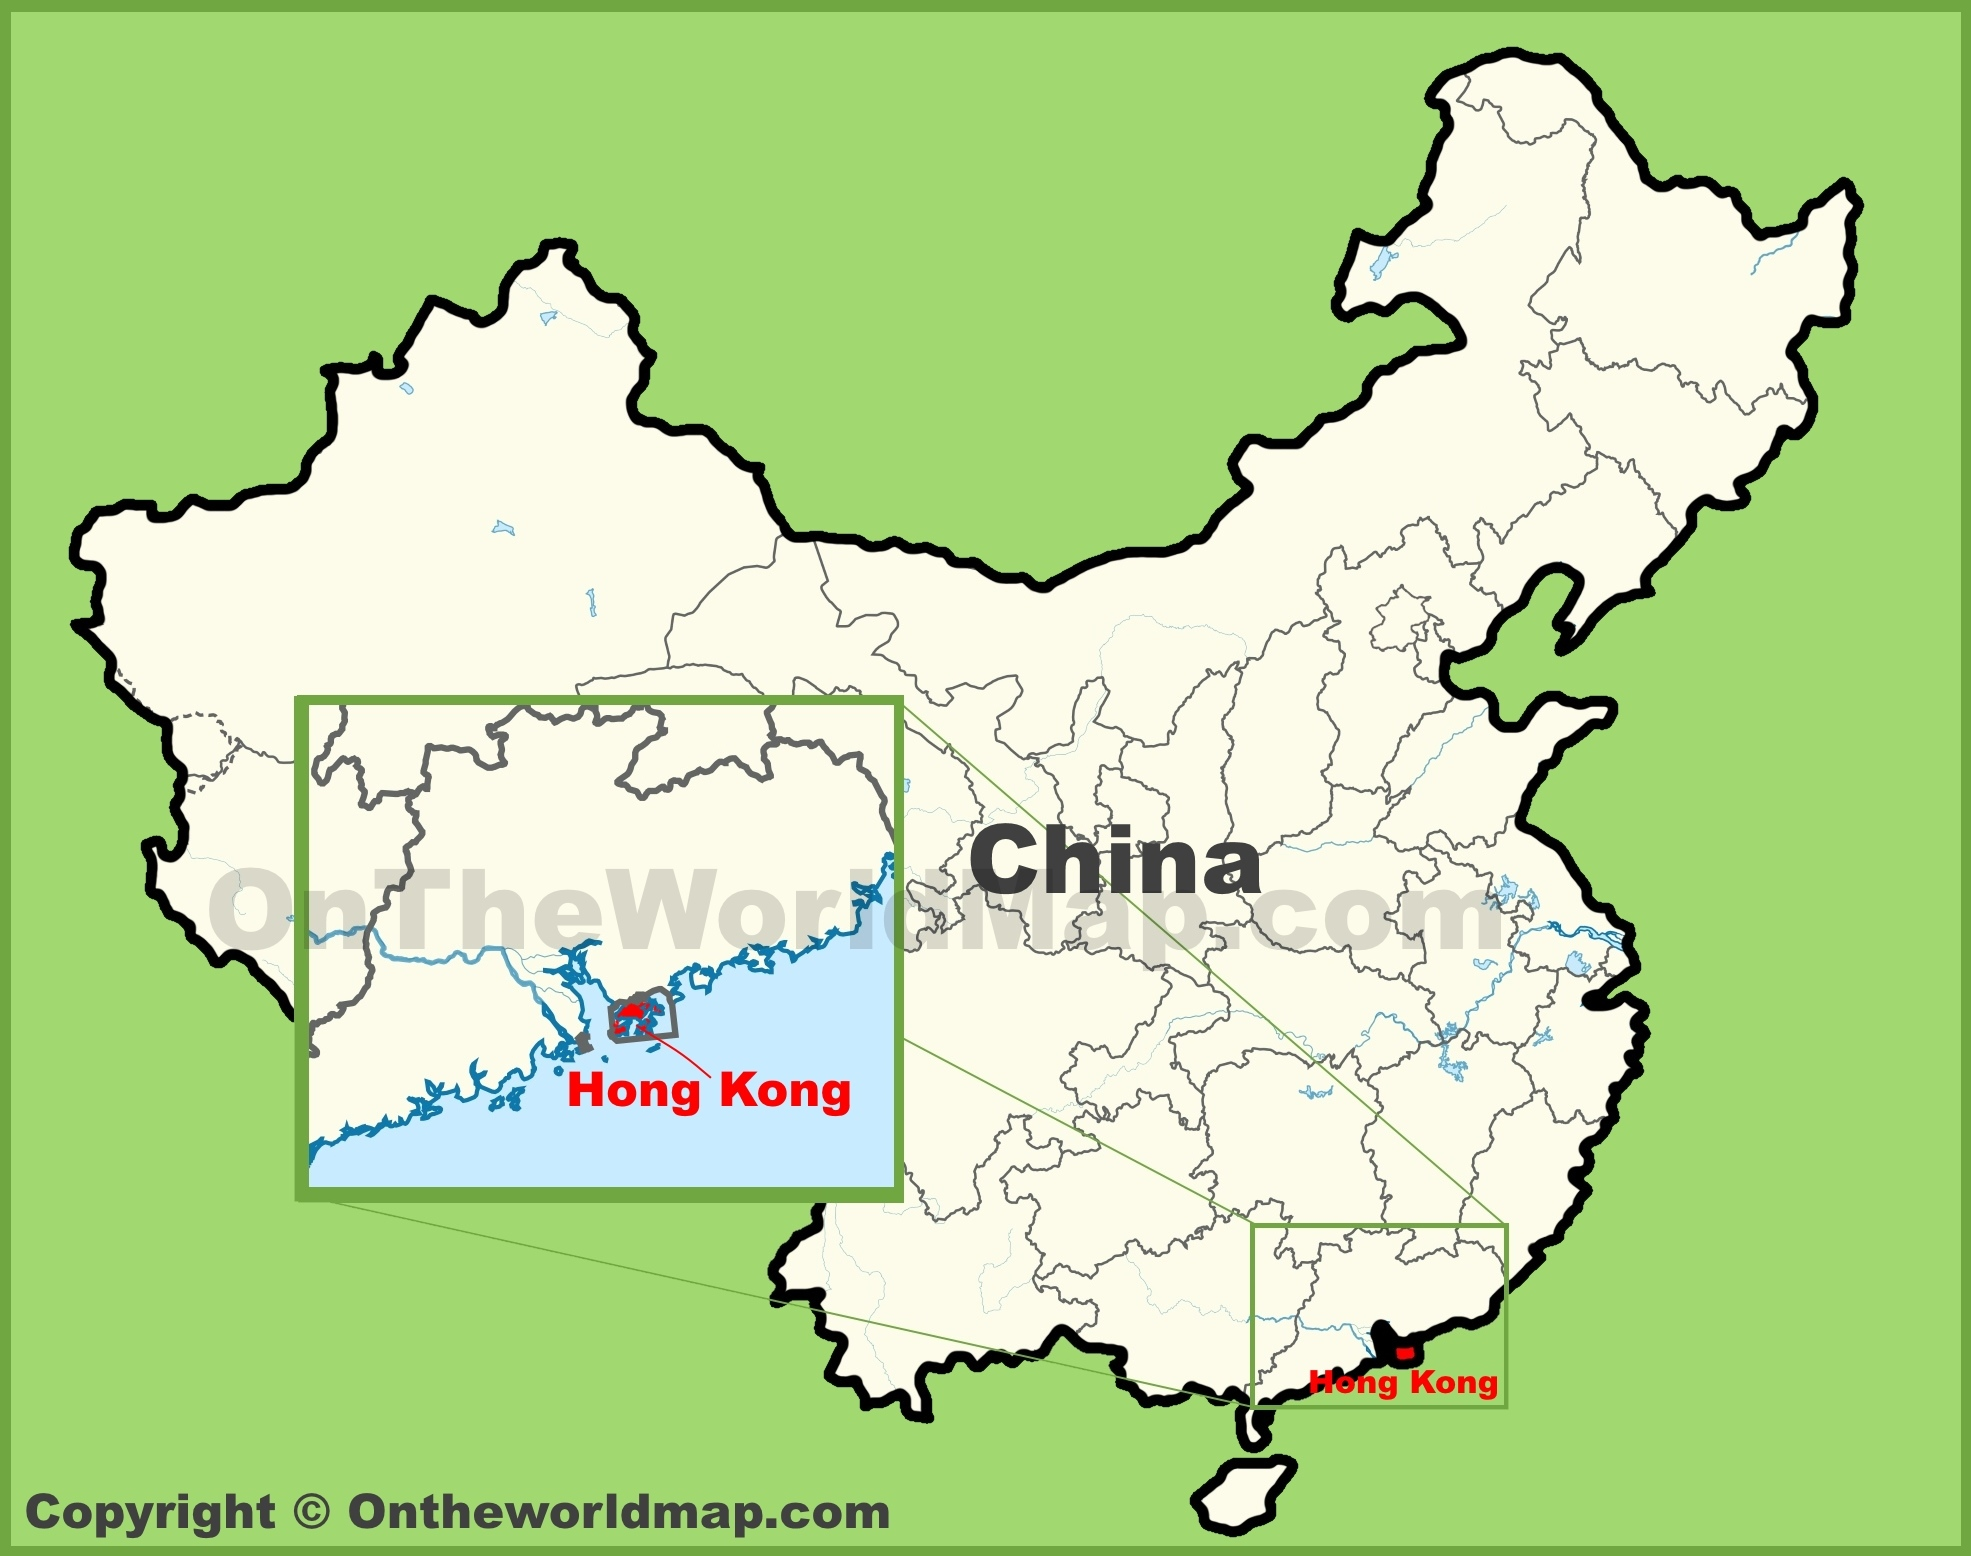 Map Of China And Hong Kong Hong Kong location on the map of China